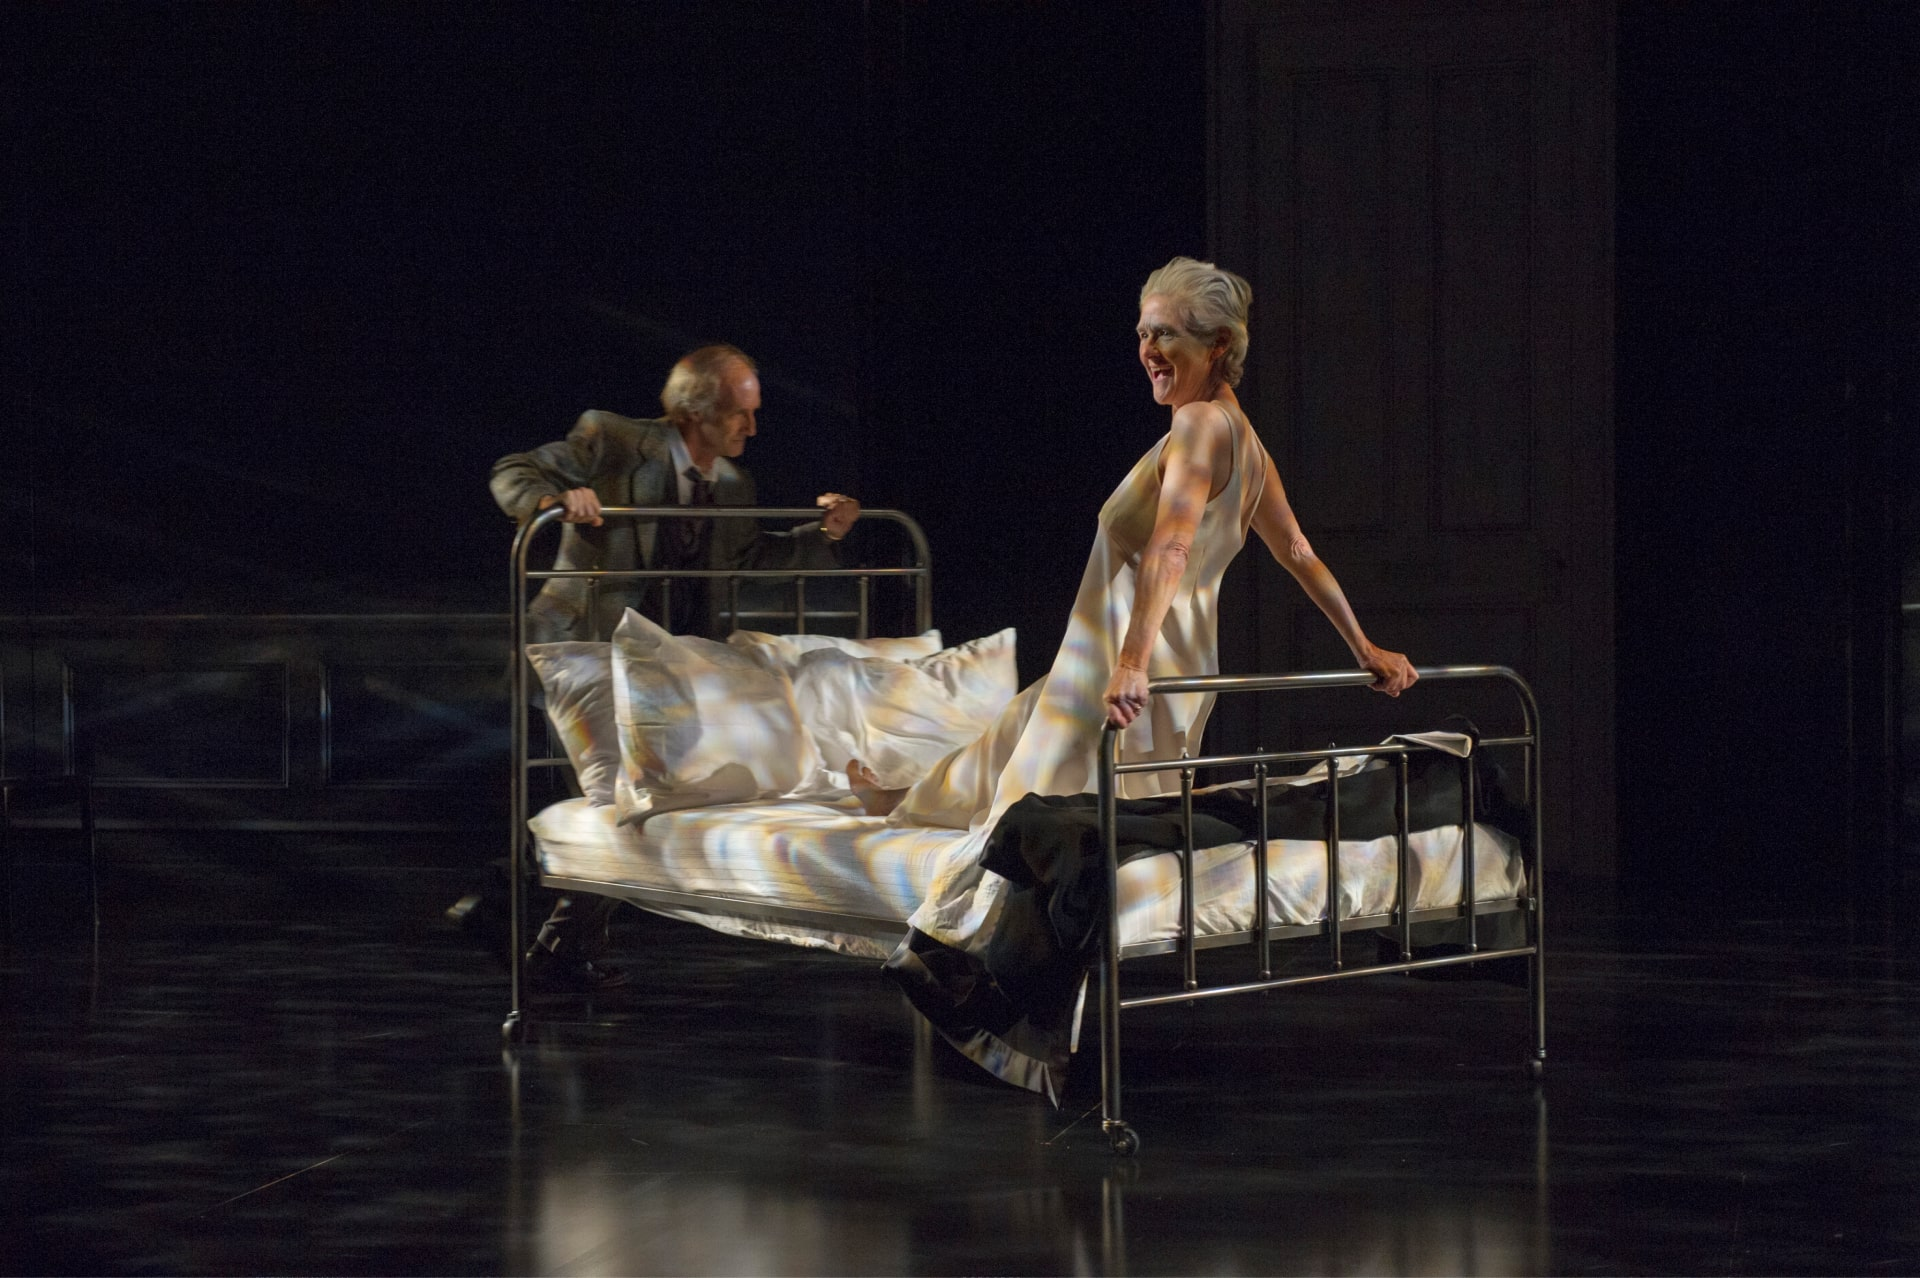 Woman in white slip clasps footrail of bed as man in suit spins bed around stage under dappled light.